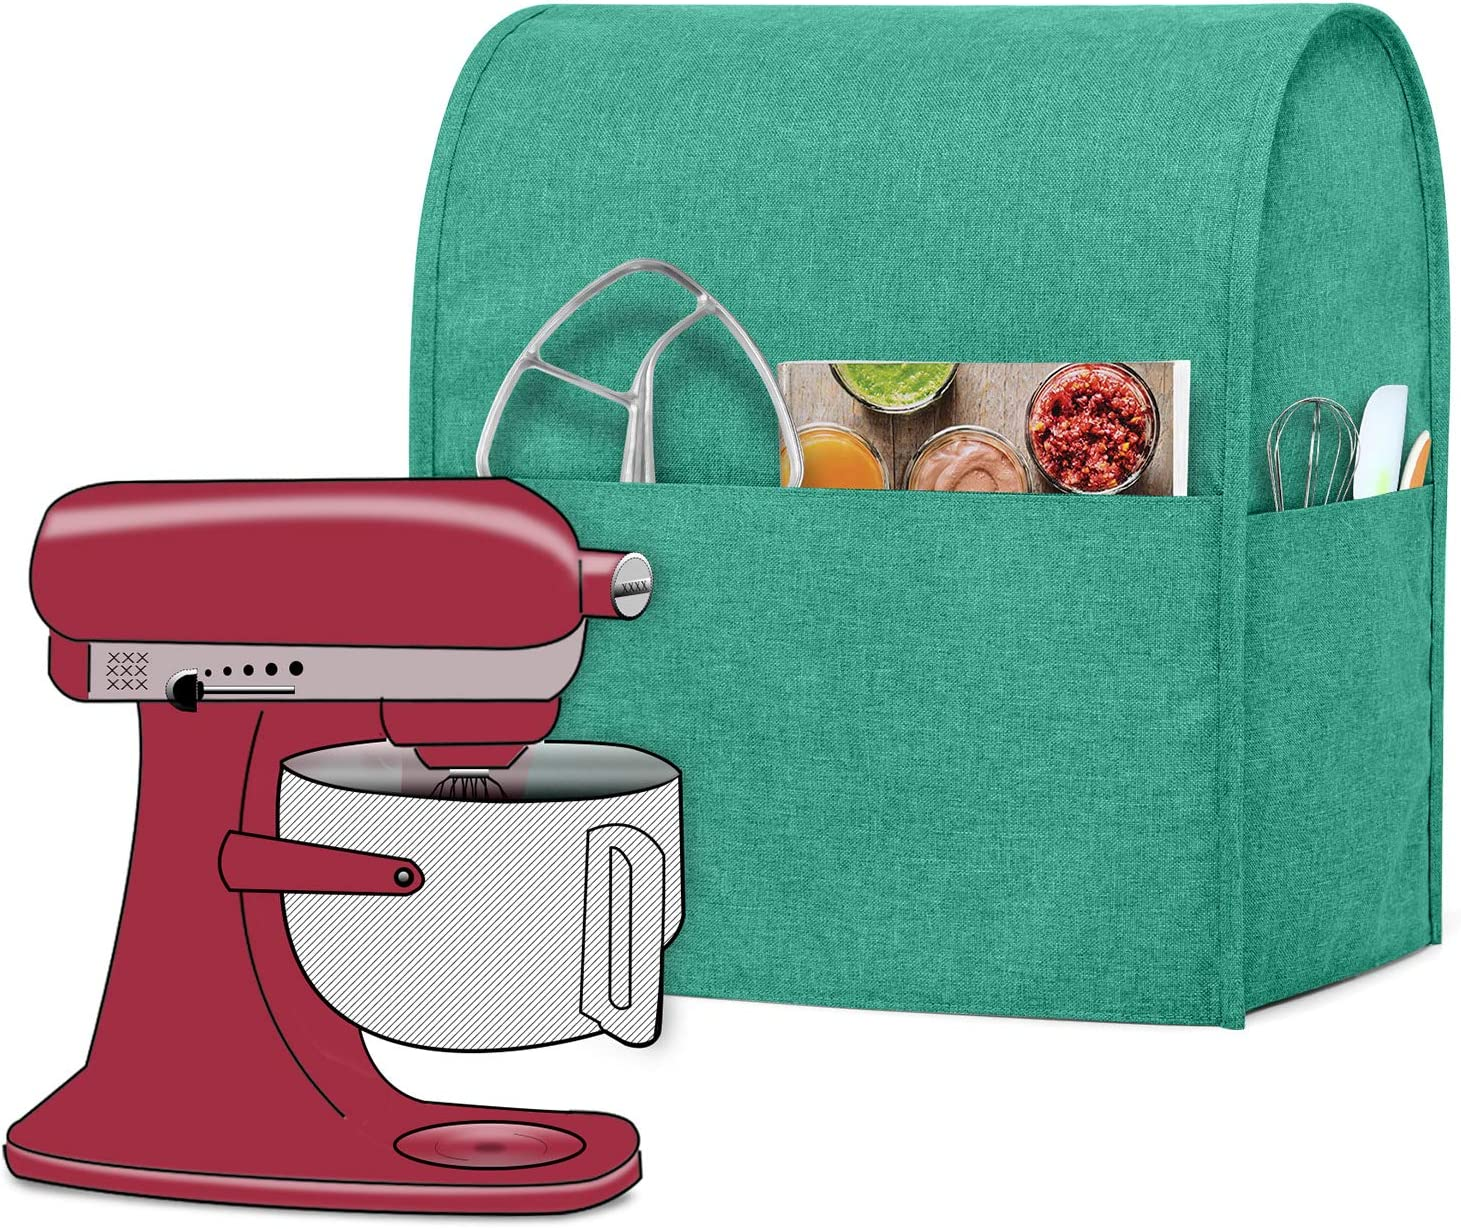 Luxja Dust Cover Compatible with 6-8 Quart KitchenAid Mixers, Cloth Cover with Pockets for KitchenAid Mixers and Extra Accessories (Compatible with All 6-8 Quart KitchenAid Mixers), Green